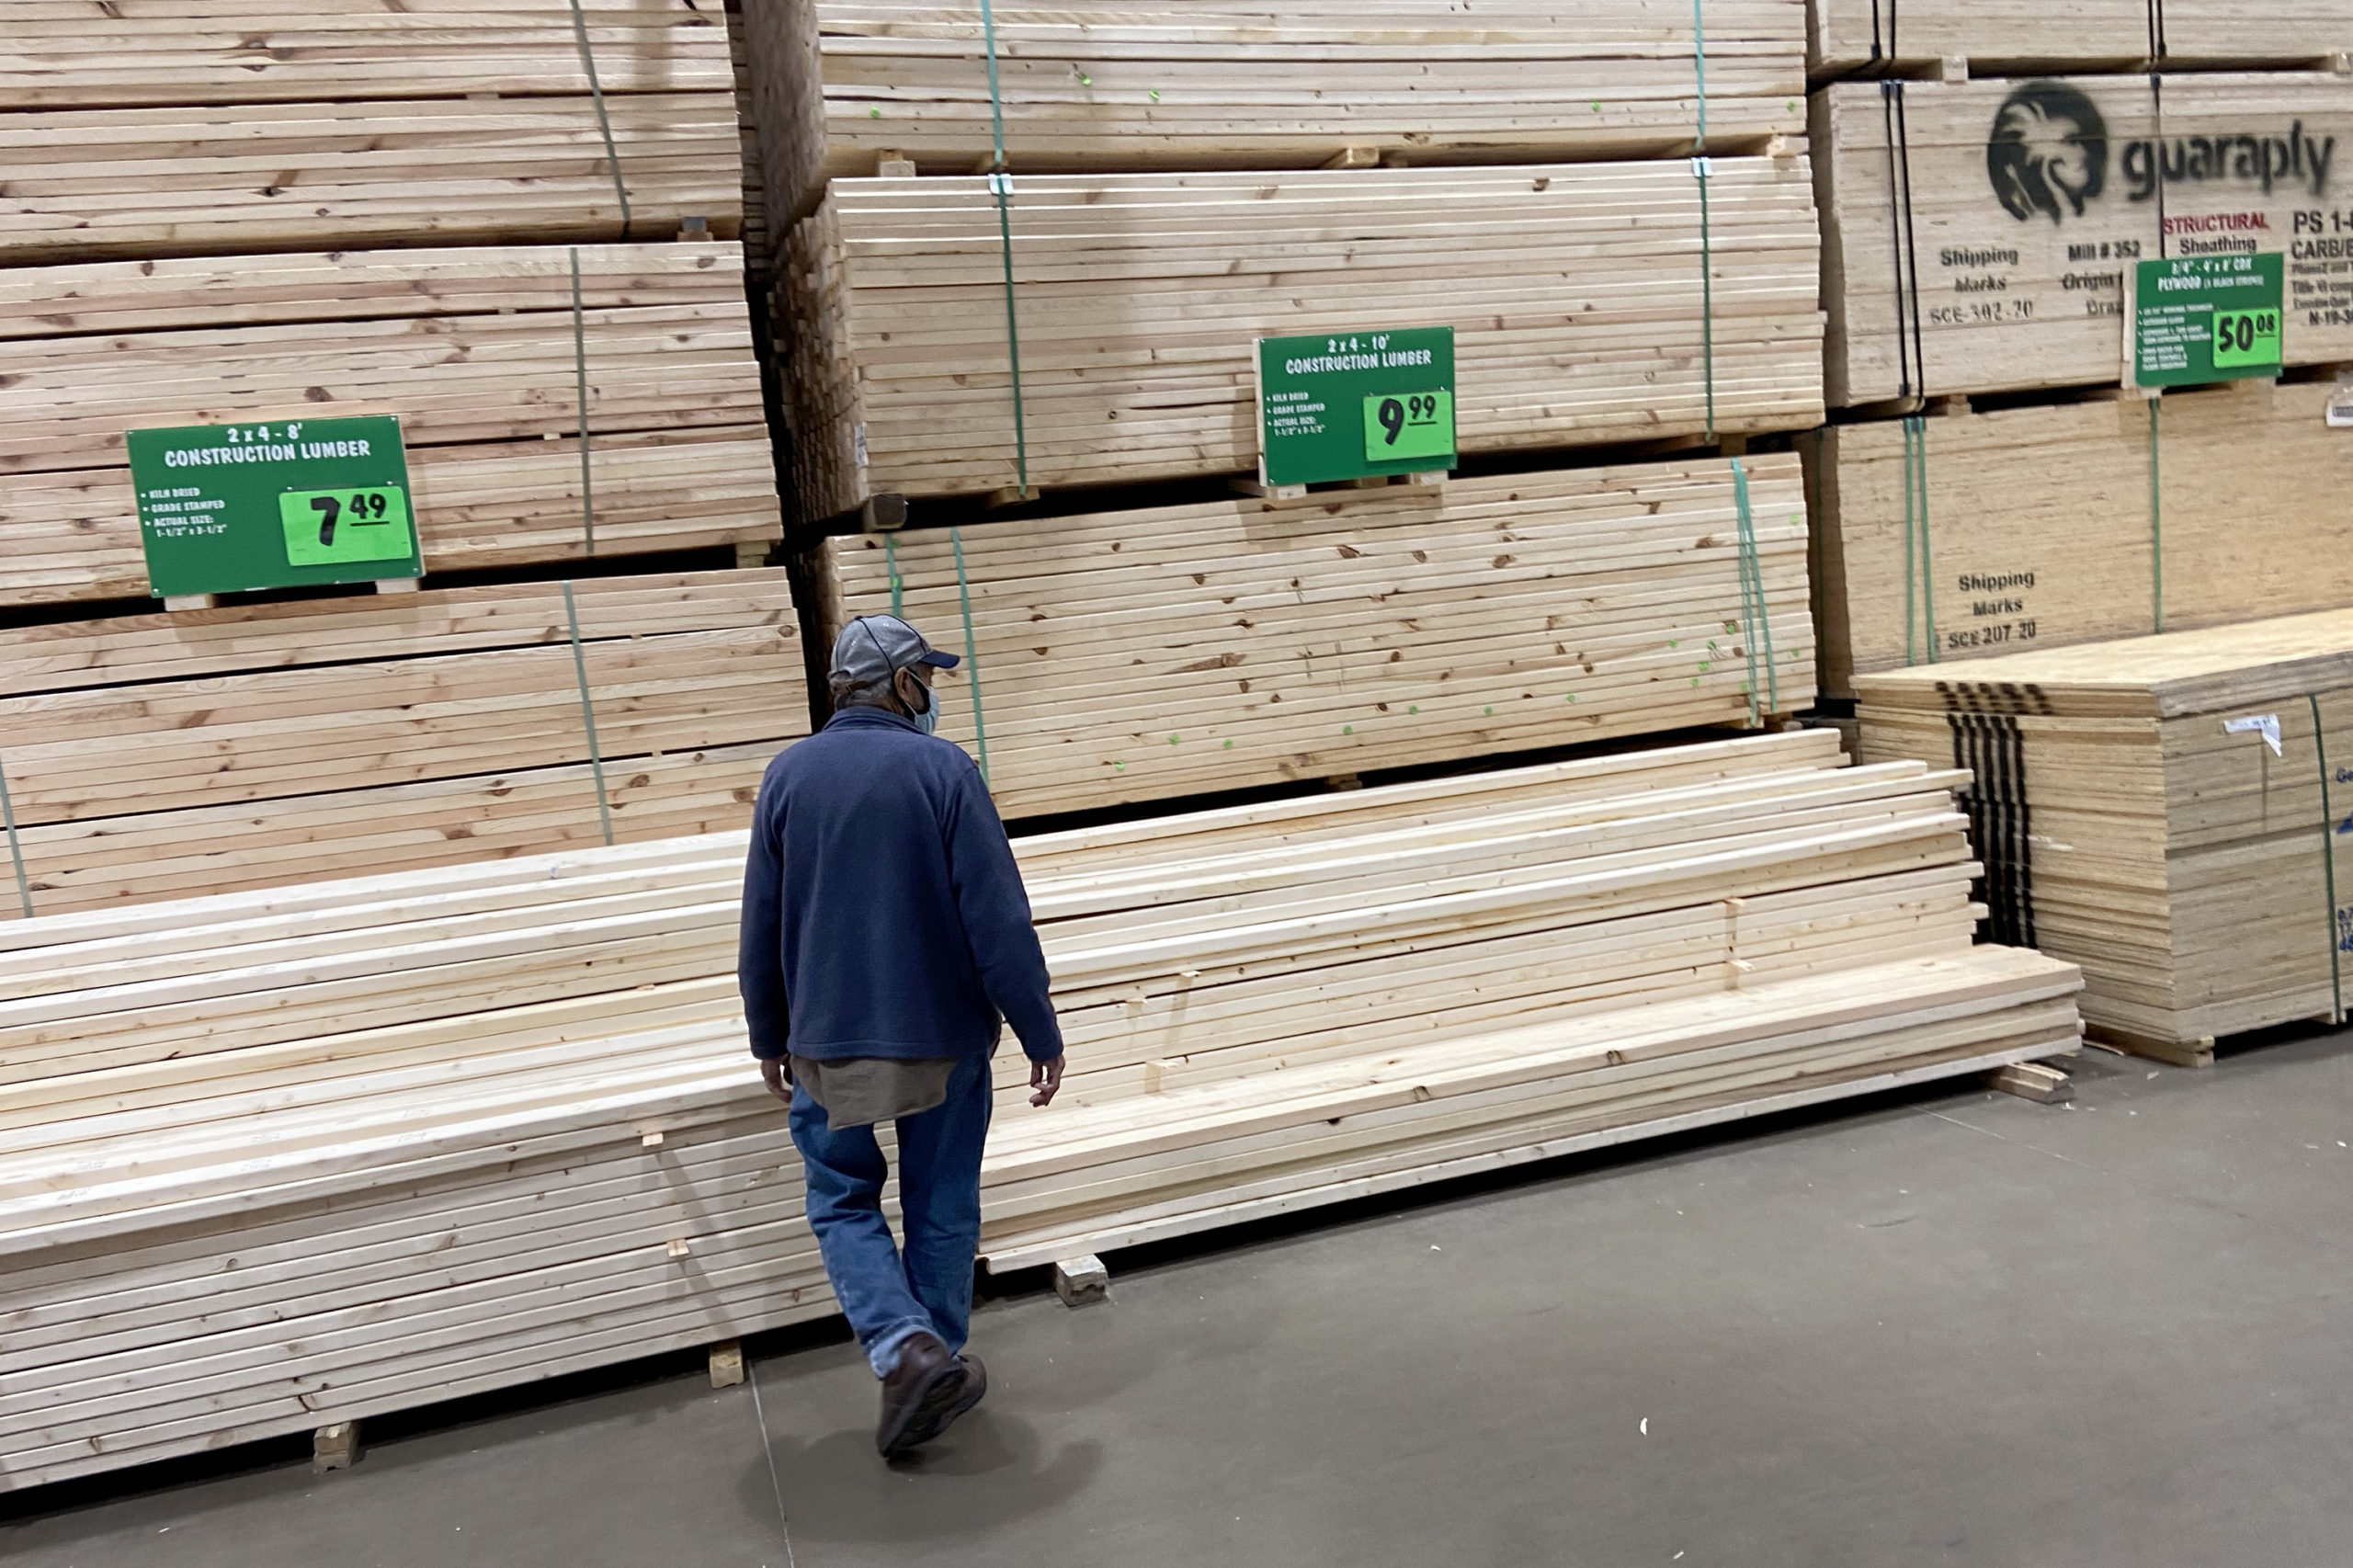 Stacks of lumber are offered for sale at a home center on April 5 in Chicago, Illinois. (Scott Olson/Getty Images)